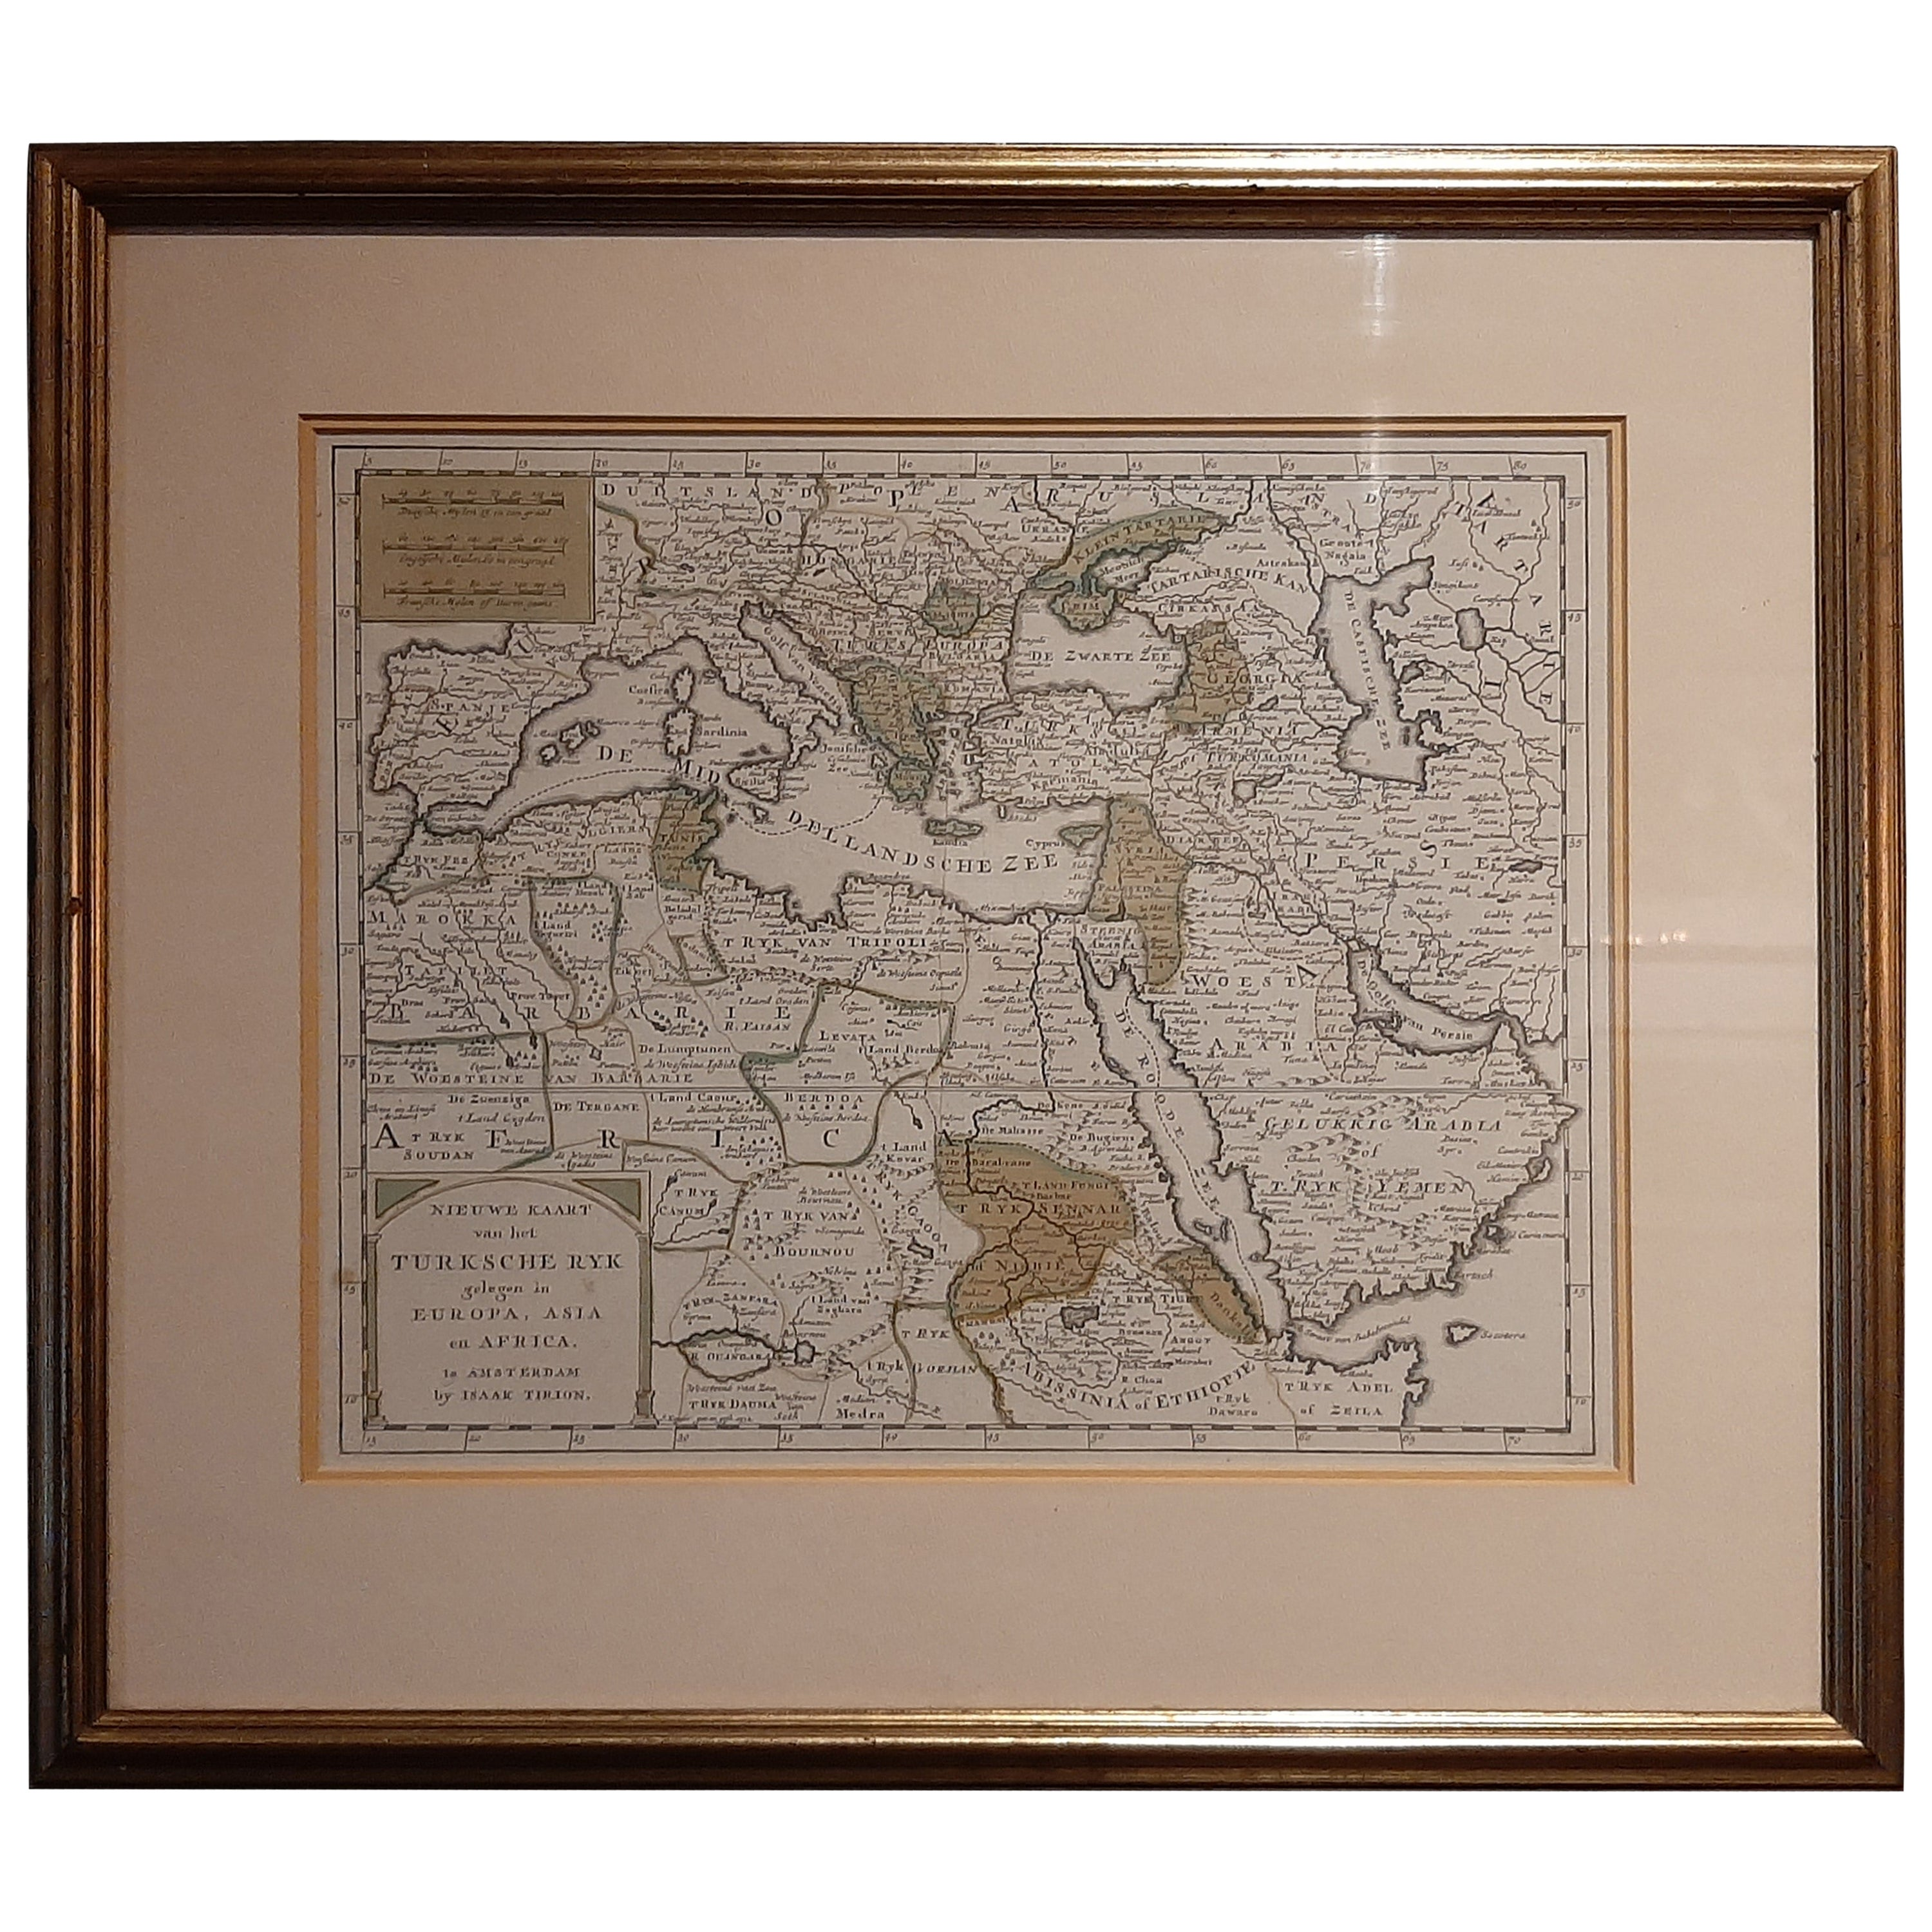 Antique Map of the Turkish Empire by Tirion, 1763